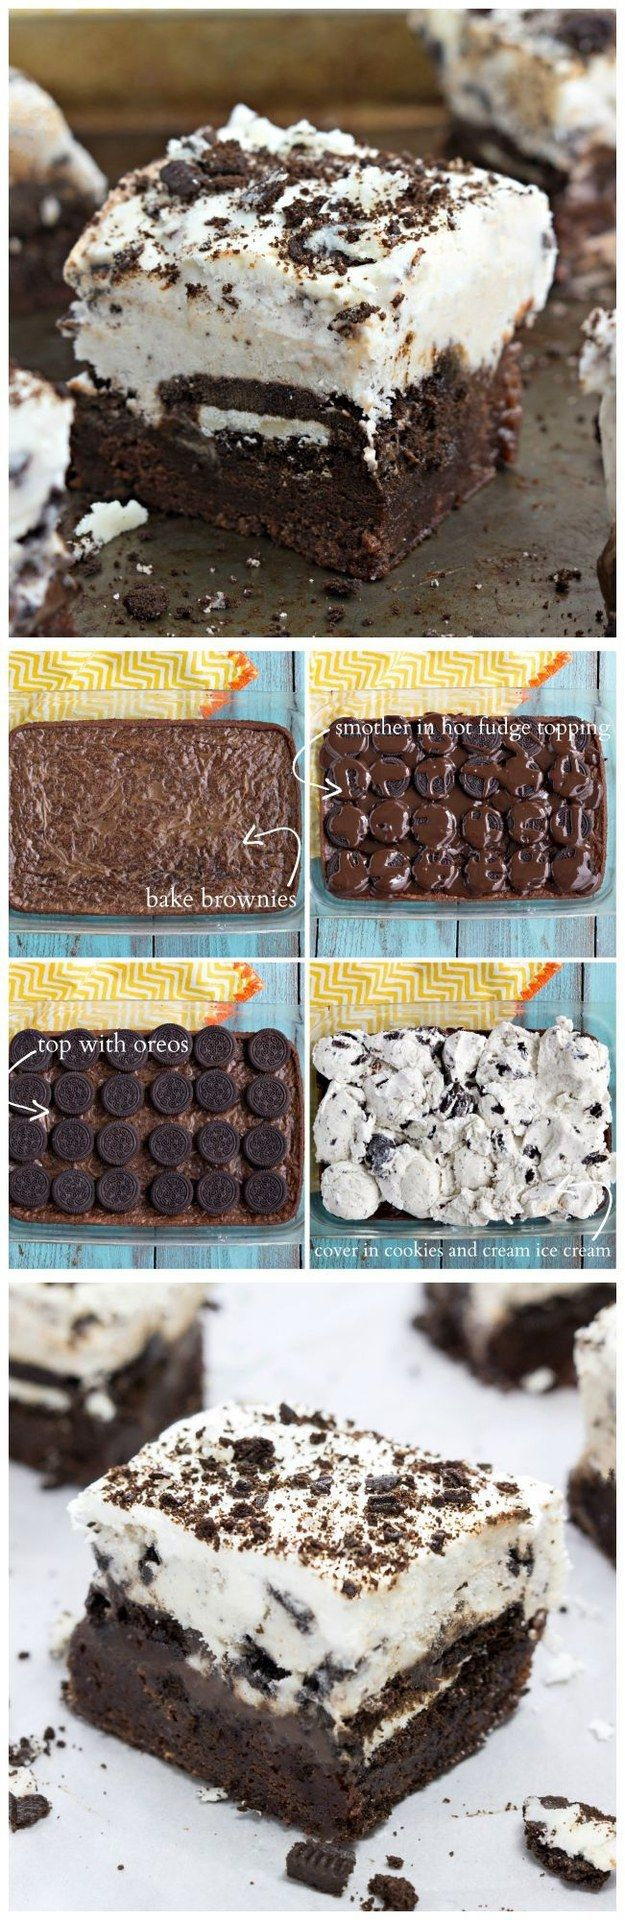 If you're more of an ALL THE DAIRY AND CALORIES type, try these oreo brownie ice cream bars. | 29 Next-Level Ice Cream Treats You Can Make At Home This Summer